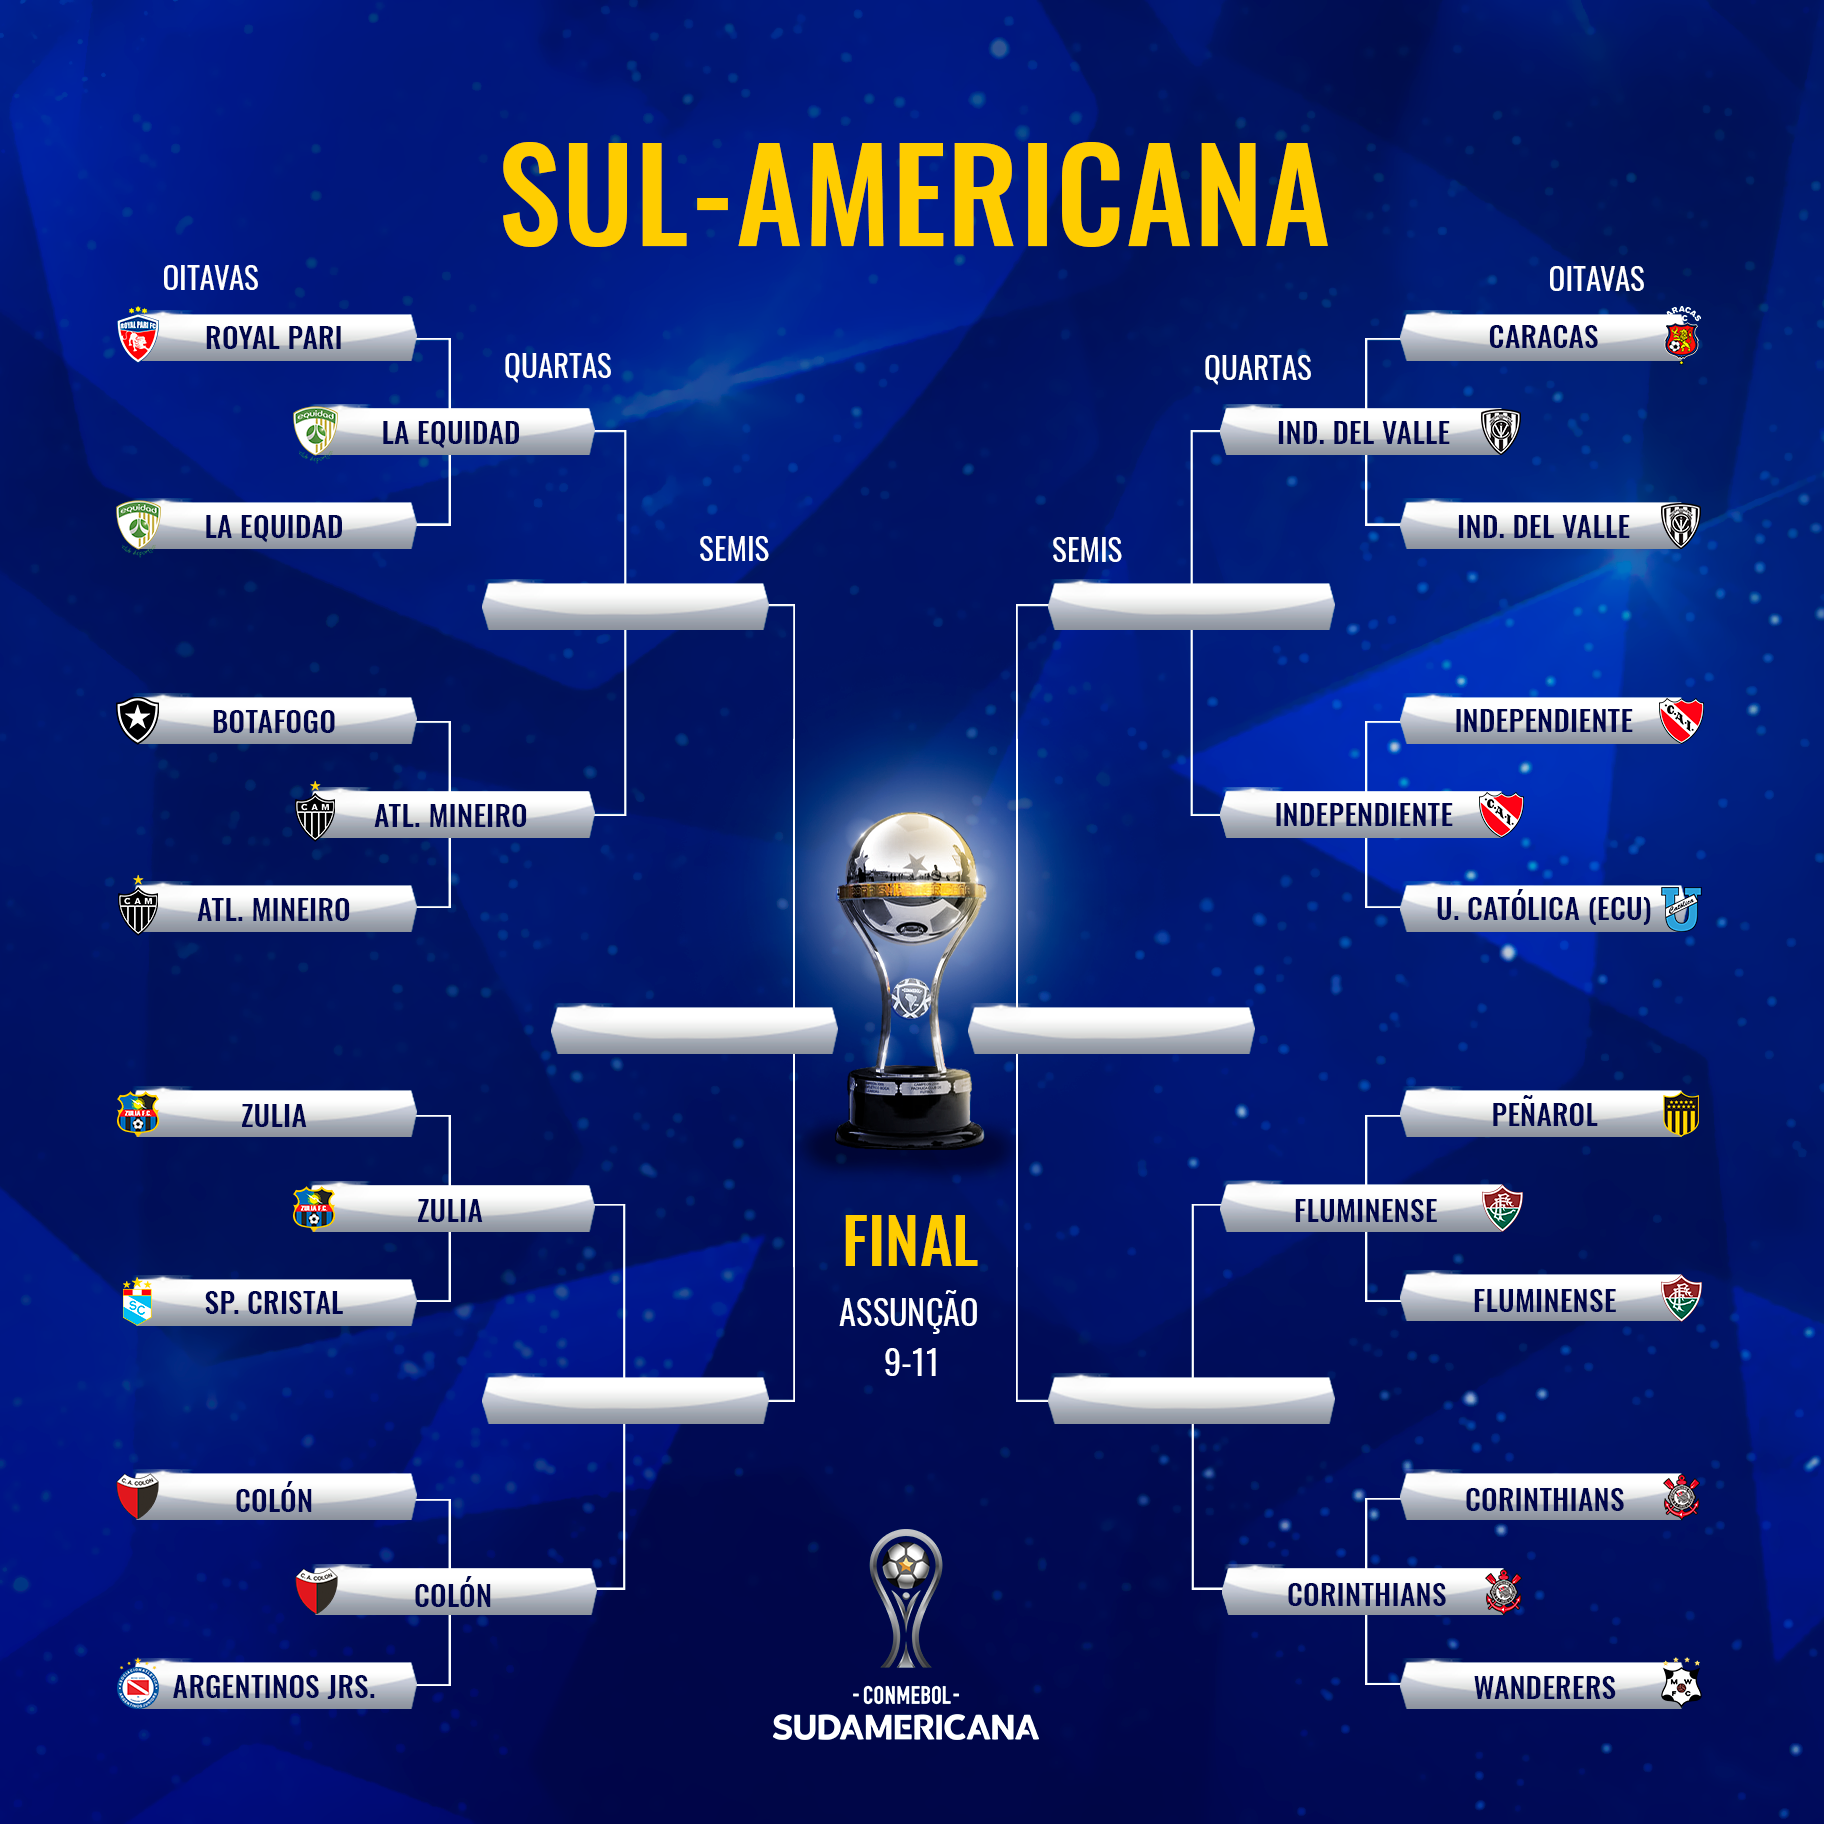 Chaves Sul-Americana 2019 Quartas de Final